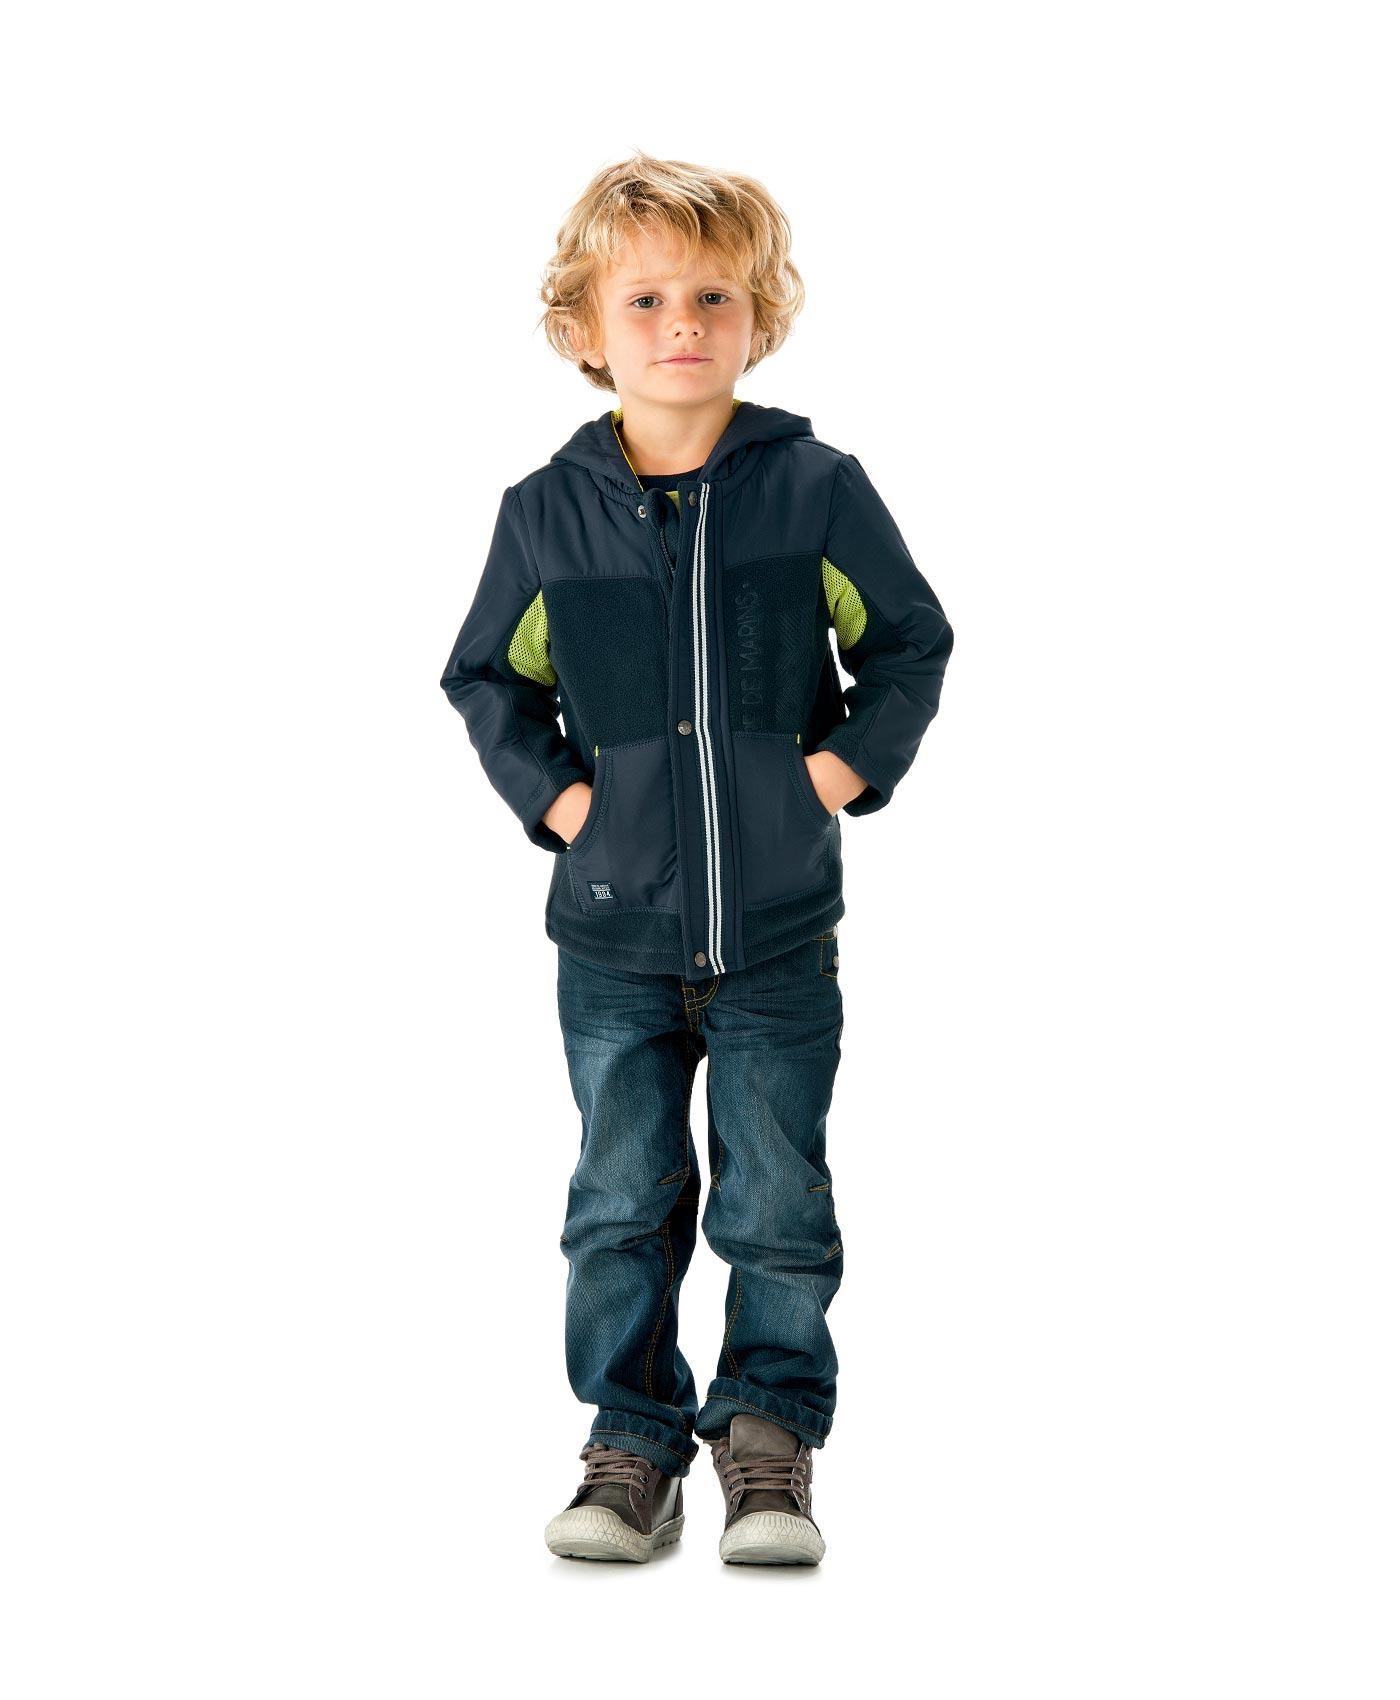 veste mi saison garcon enfant pulls u gilets quiksilver. Black Bedroom Furniture Sets. Home Design Ideas